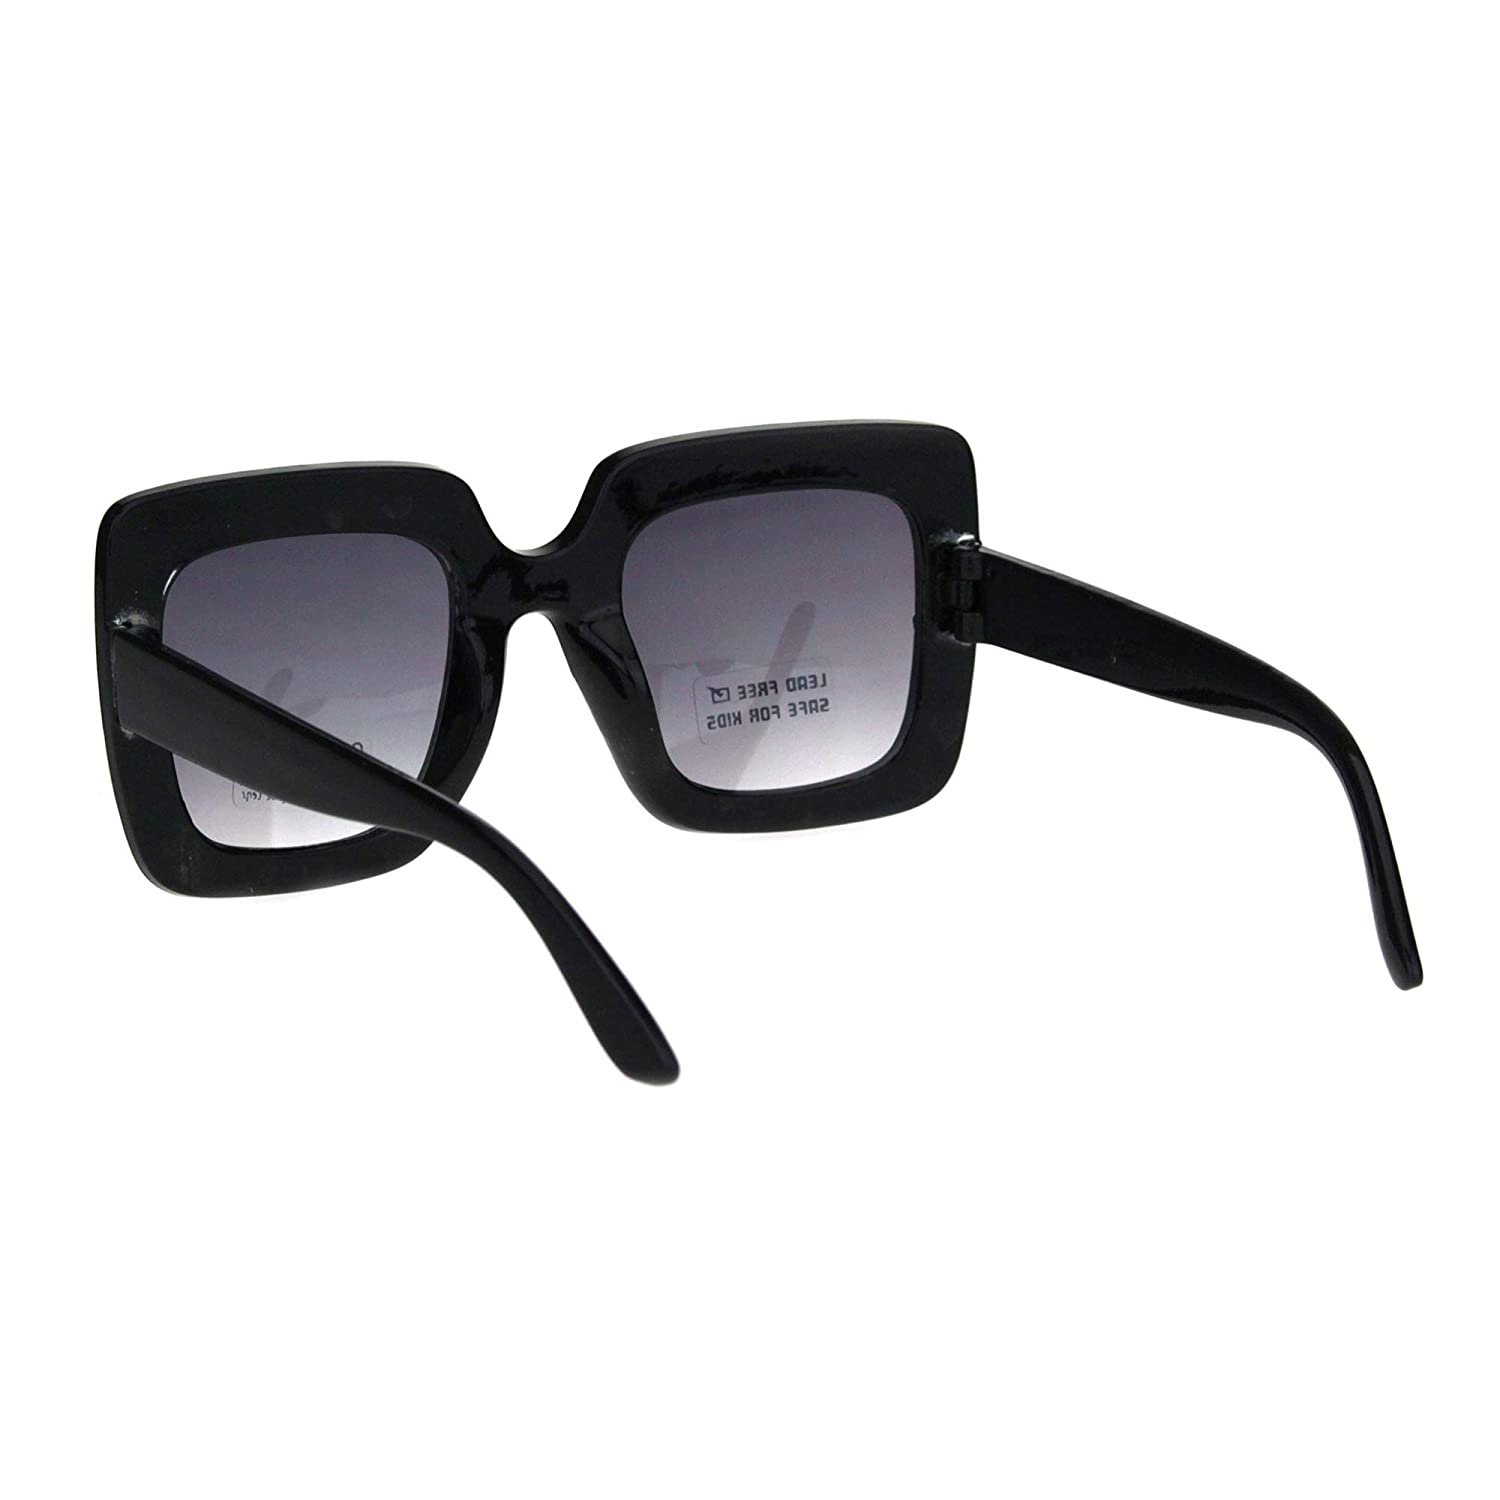 Fuse Lenses Non-Polarized Replacement Lenses for Oliver Peoples OV1104 46mm